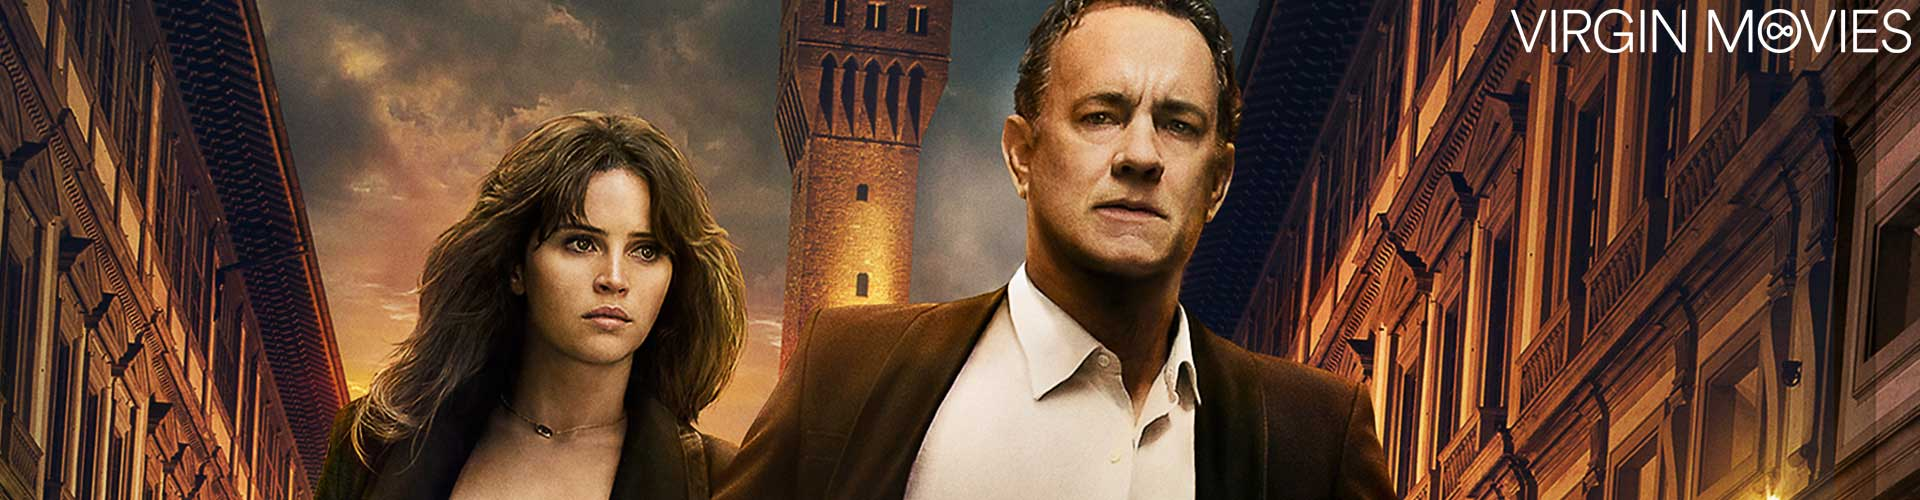 Inferno - available now on Virgin Movies